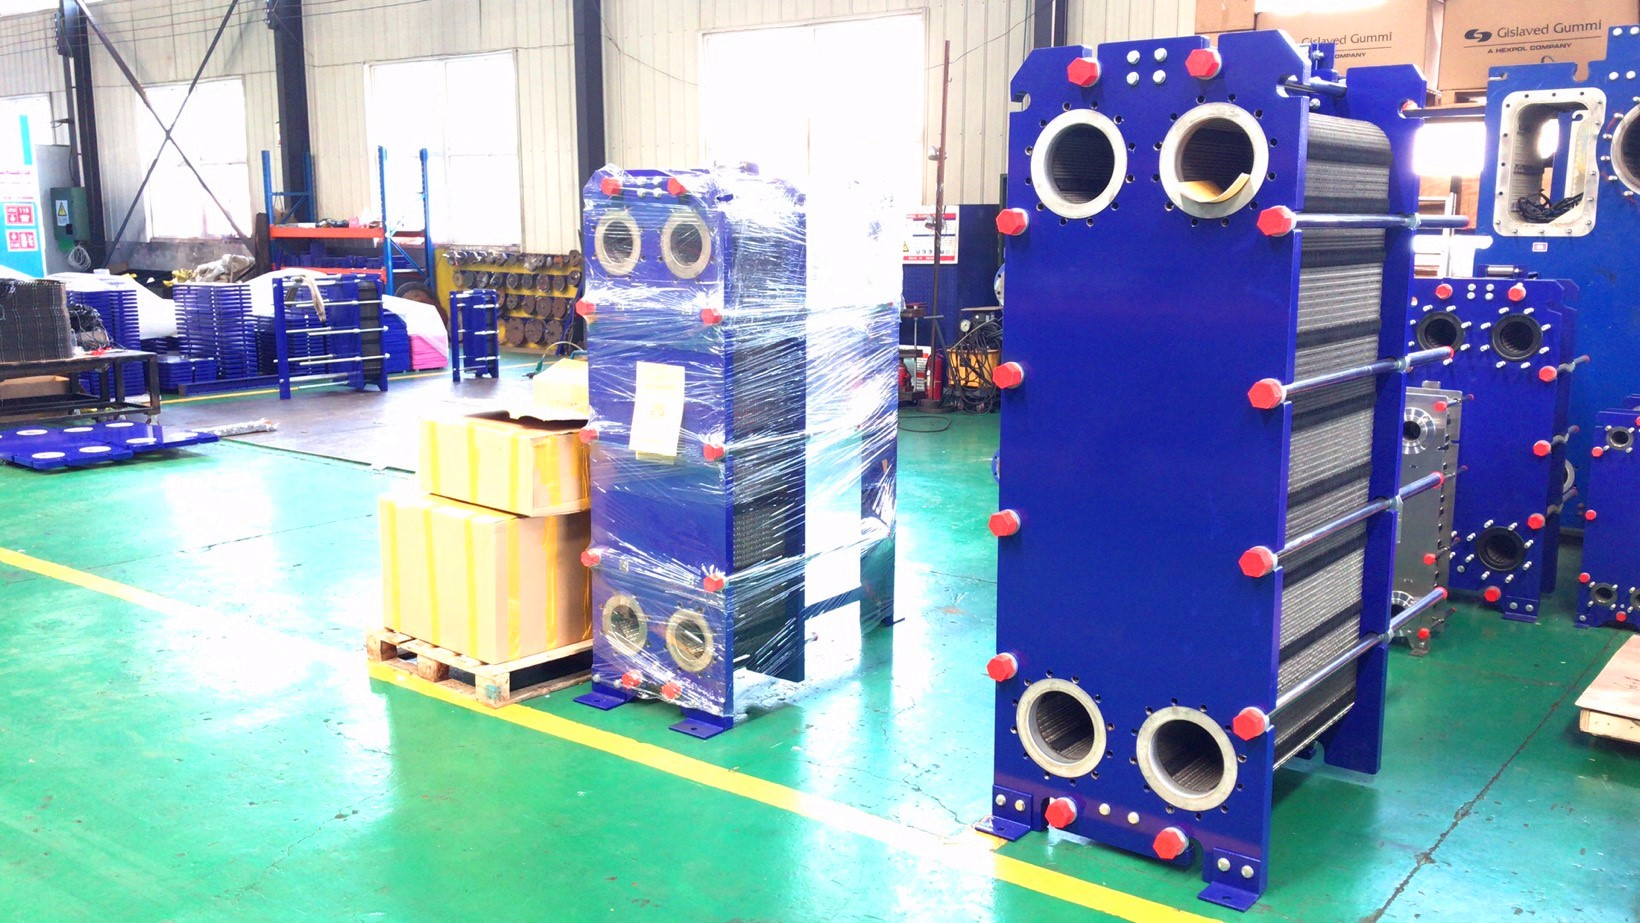 Plate heat exchanger manufacturers tell you how to prevent heat exchanger failure